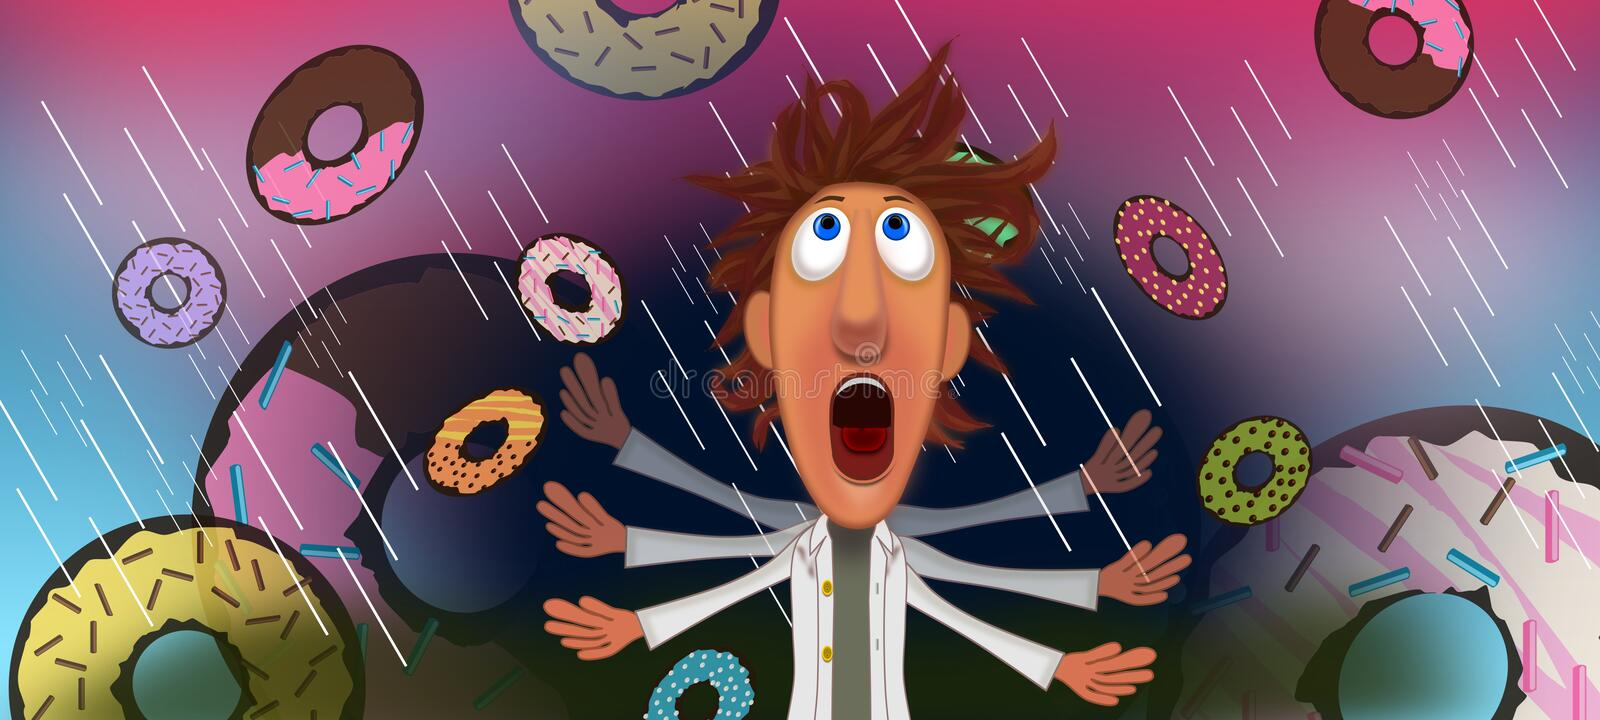 Rain of doughnuts. Rain of food in movie scene of cloudy with a chance of meatballs illustrations concept idea